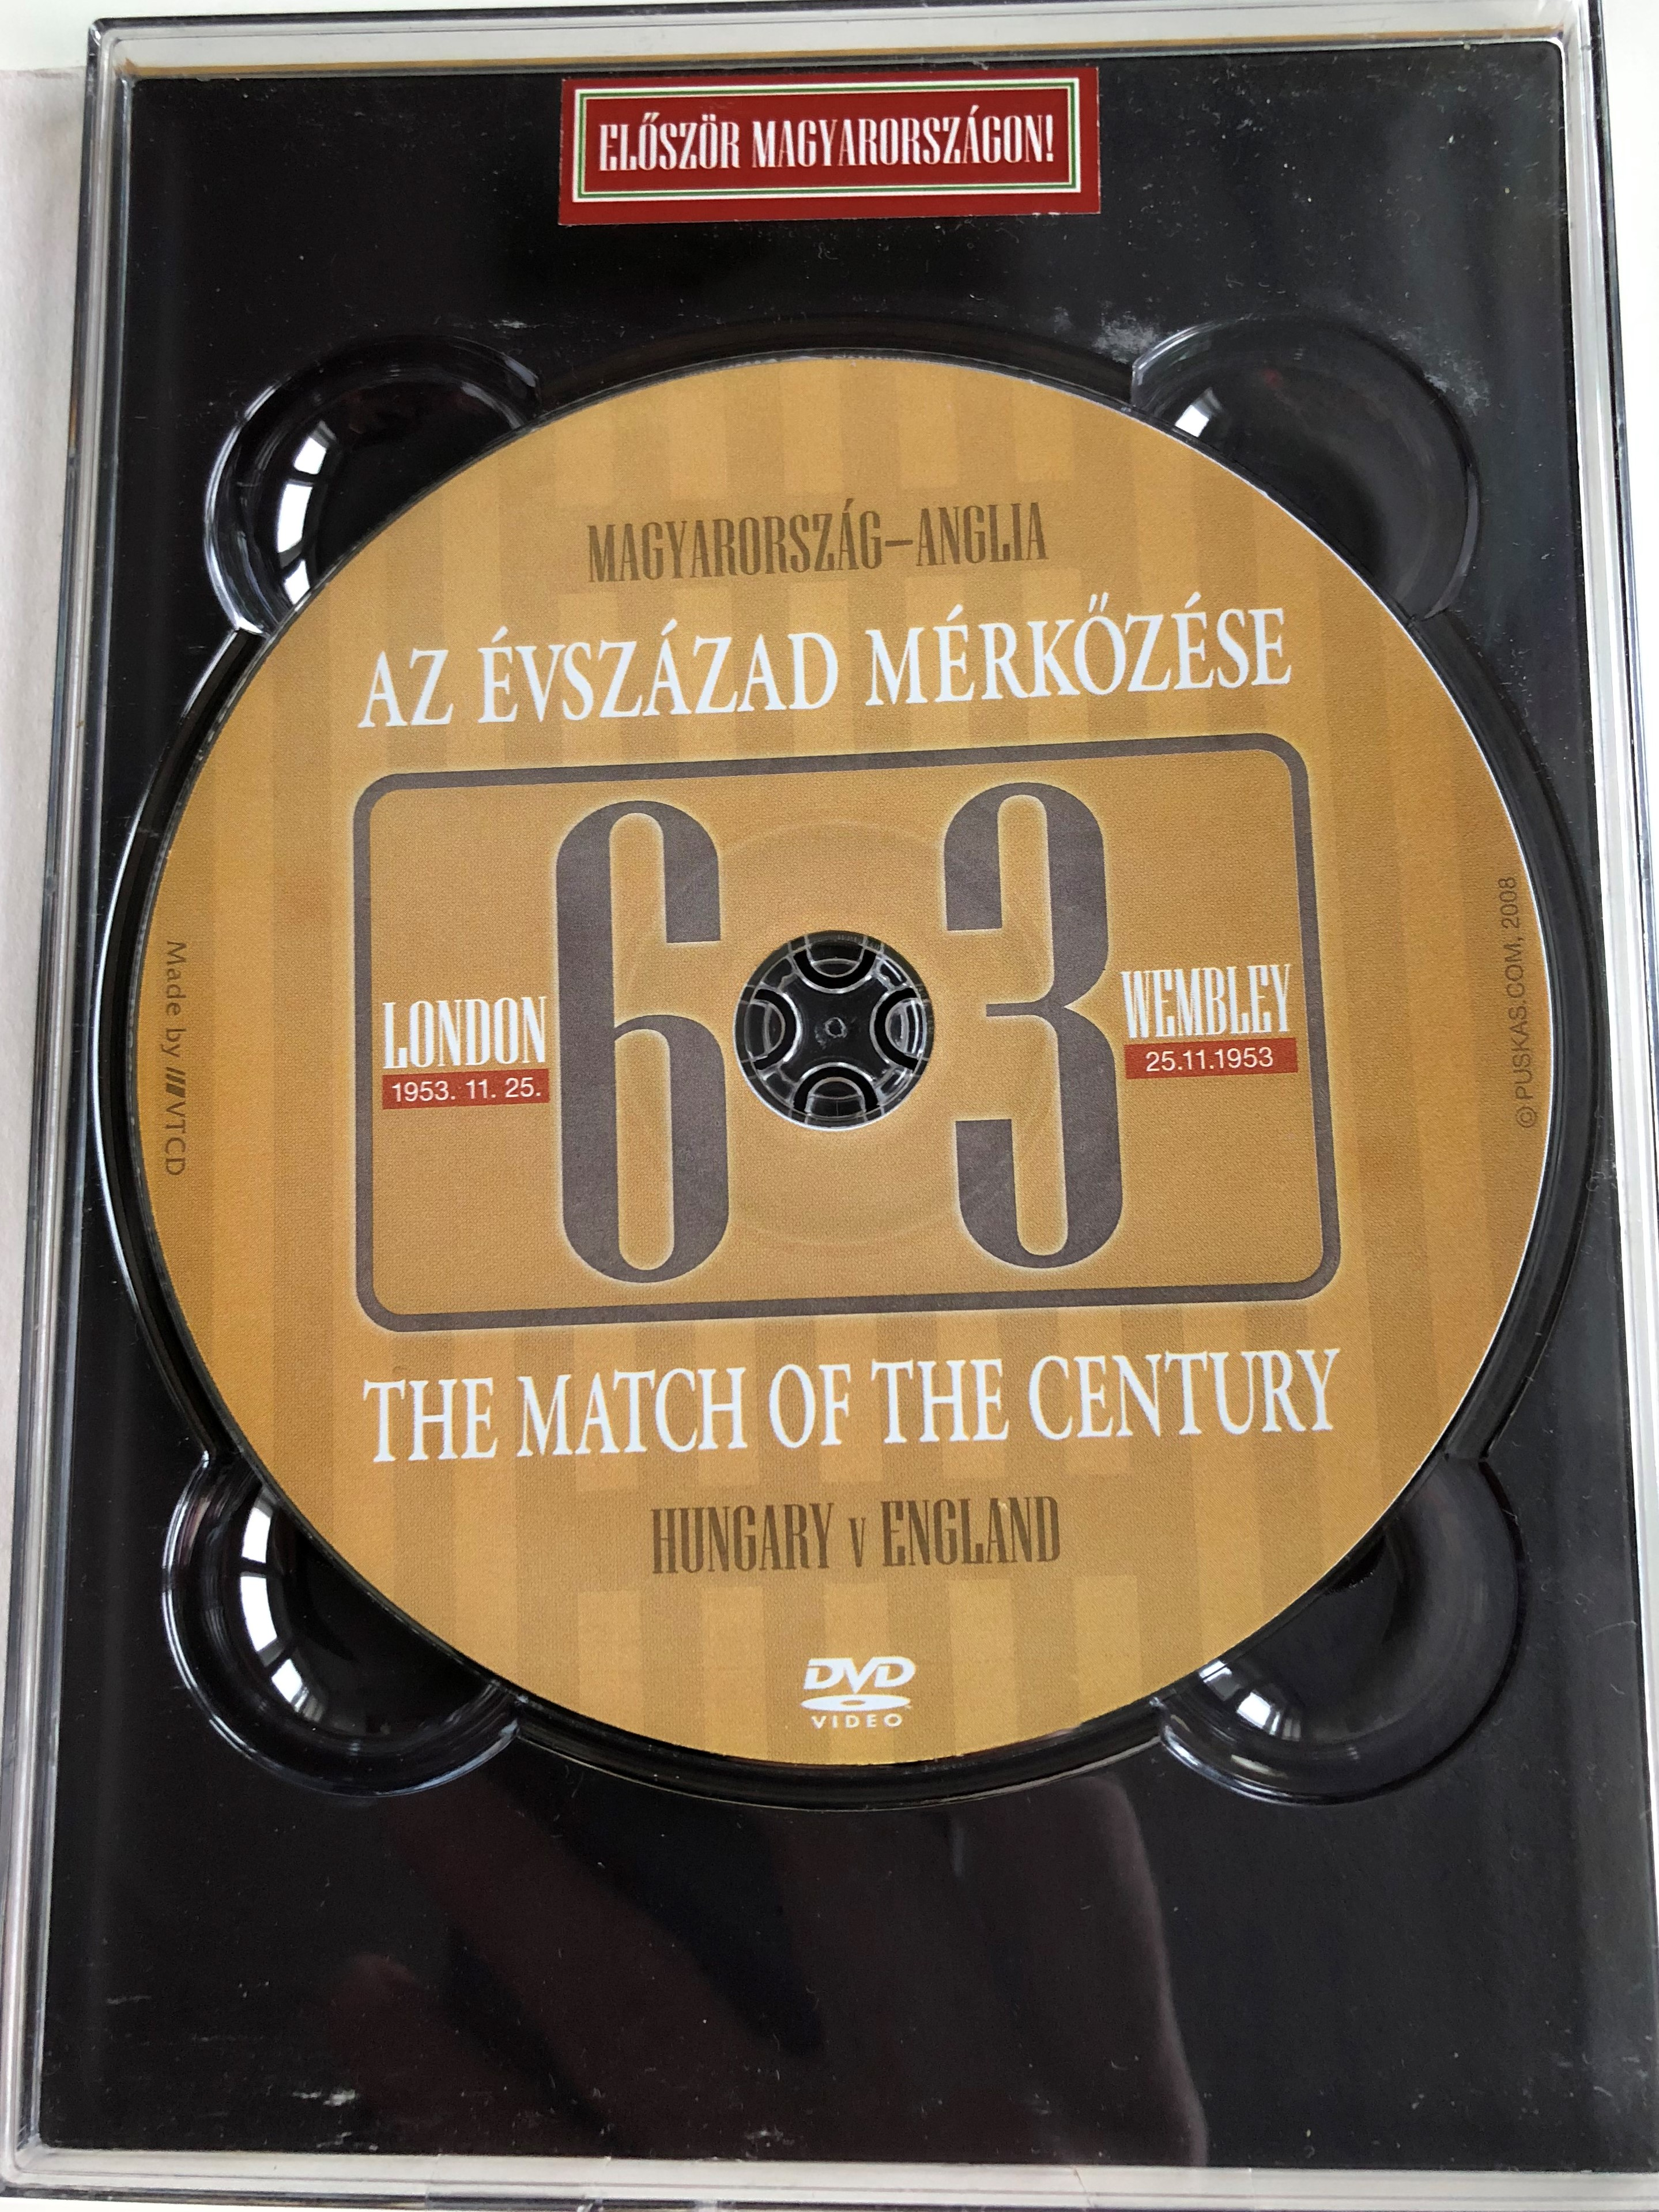 the-match-of-the-century-hungary-vs-england-dvd-az-vsz-zad-m-rk-z-se-magyarorsz-g-6-3-anglia-4.jpg